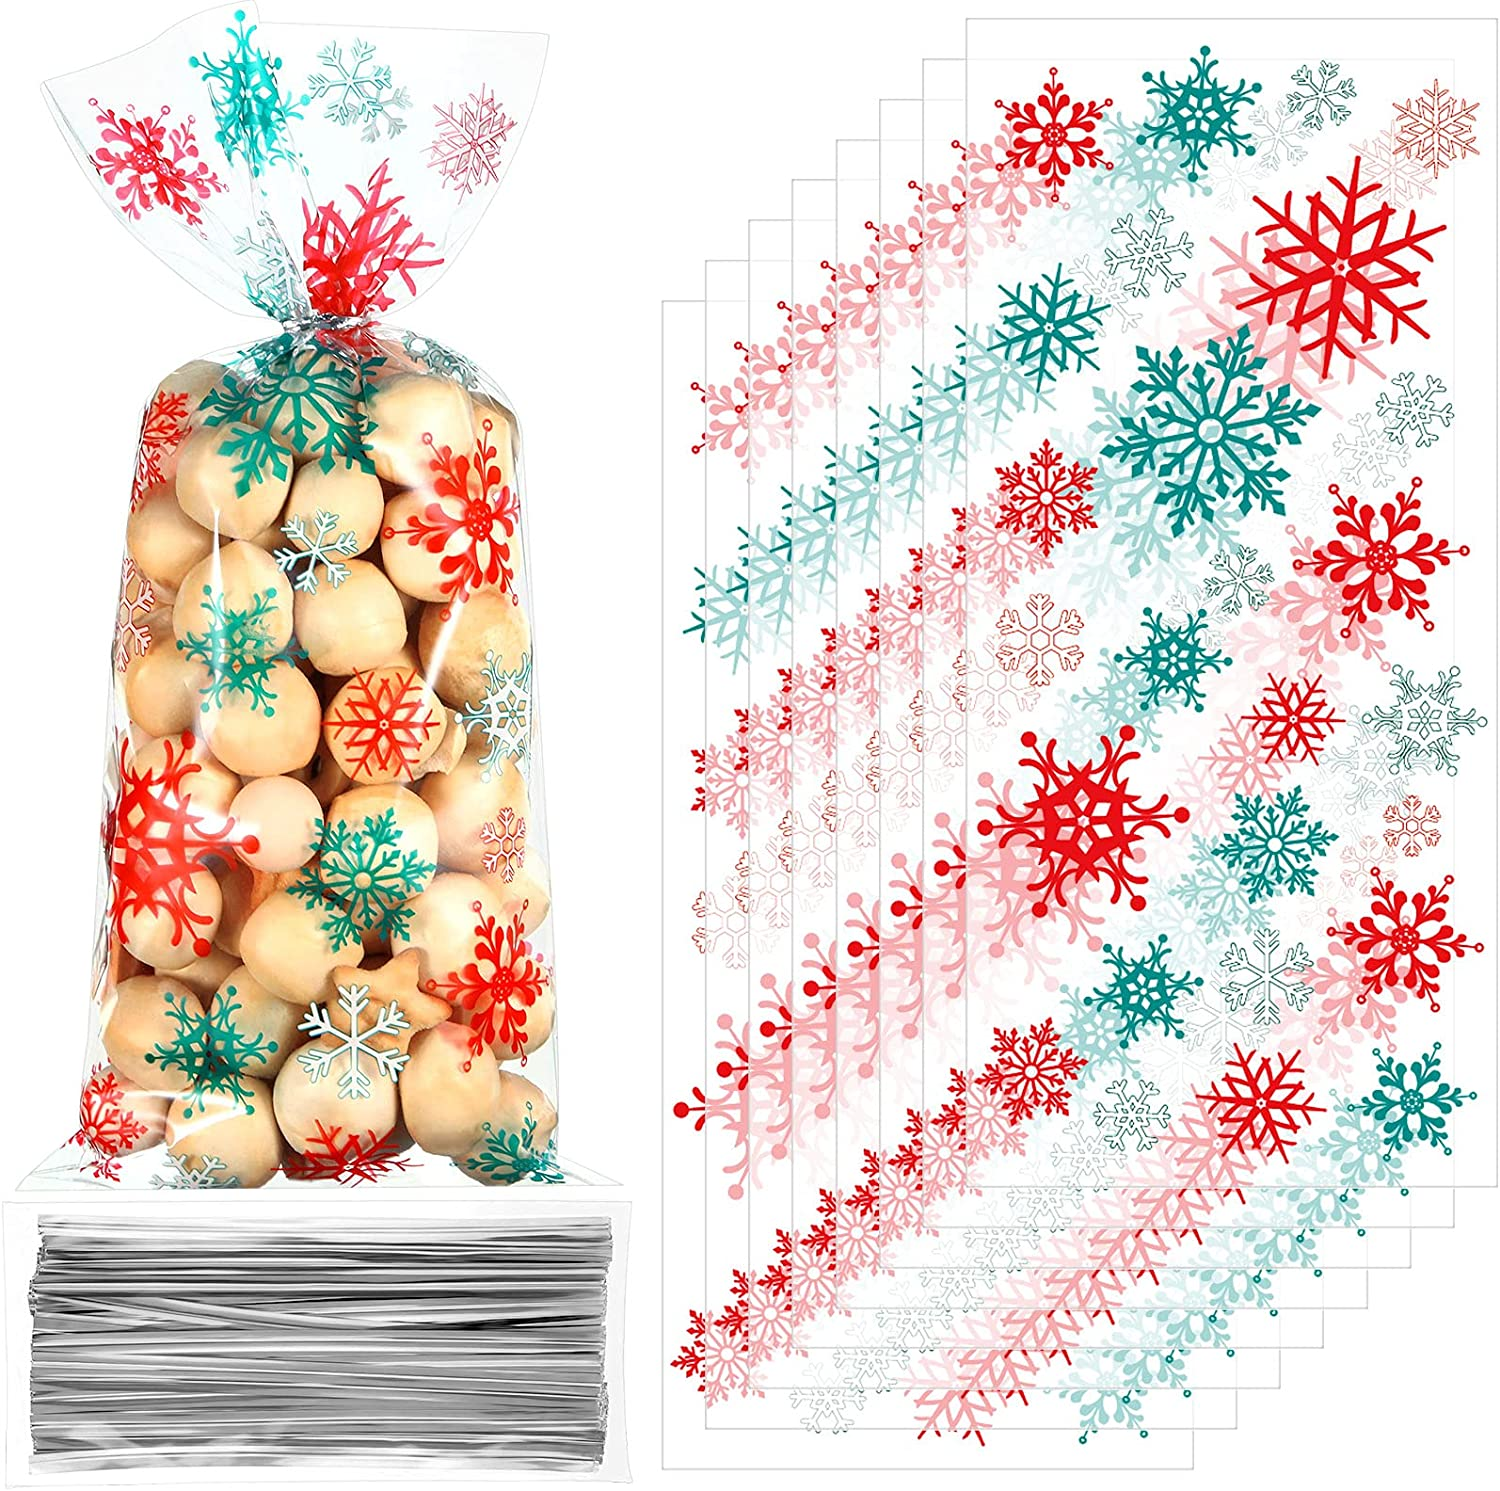 100 Pieces Christmas Cellophane Bags Snowflake Cello Treat Bags Xmas Plastic Candy Goodie Cookie Bags with 100 Silver Twist Ties for Christmas Gift giving Winter Holiday Party Favors,Red and Green